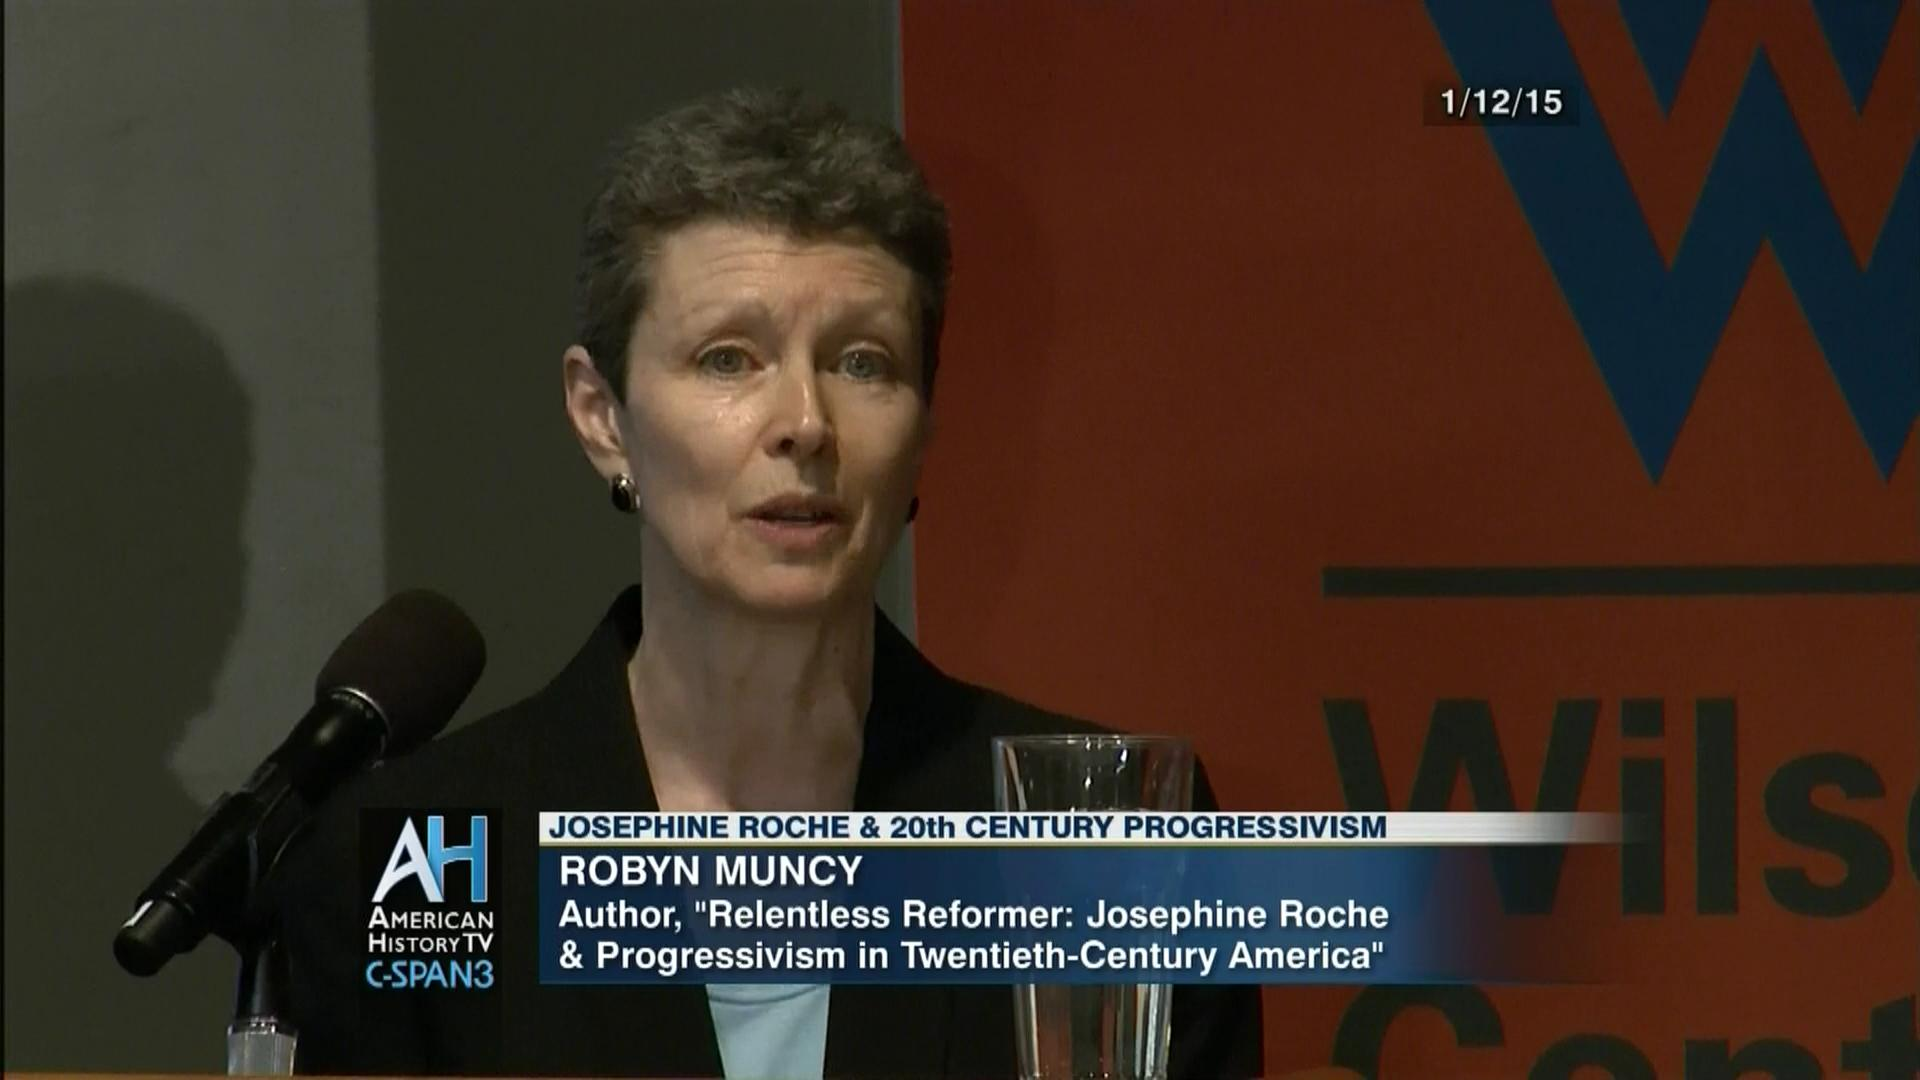 2008 01 31 the libertarian party s response to the state of the union address feed - Josephine Roche And 20th Century Progressivism